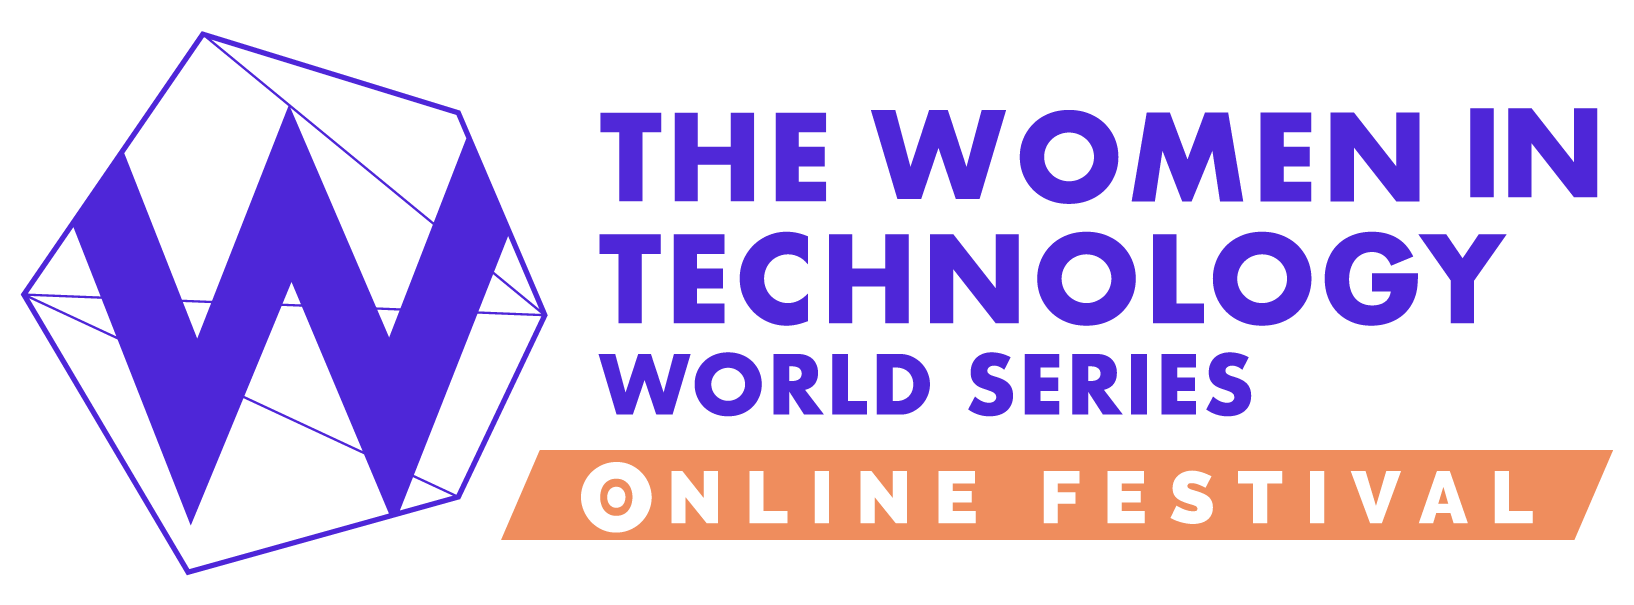 Women In Technology Online Festival